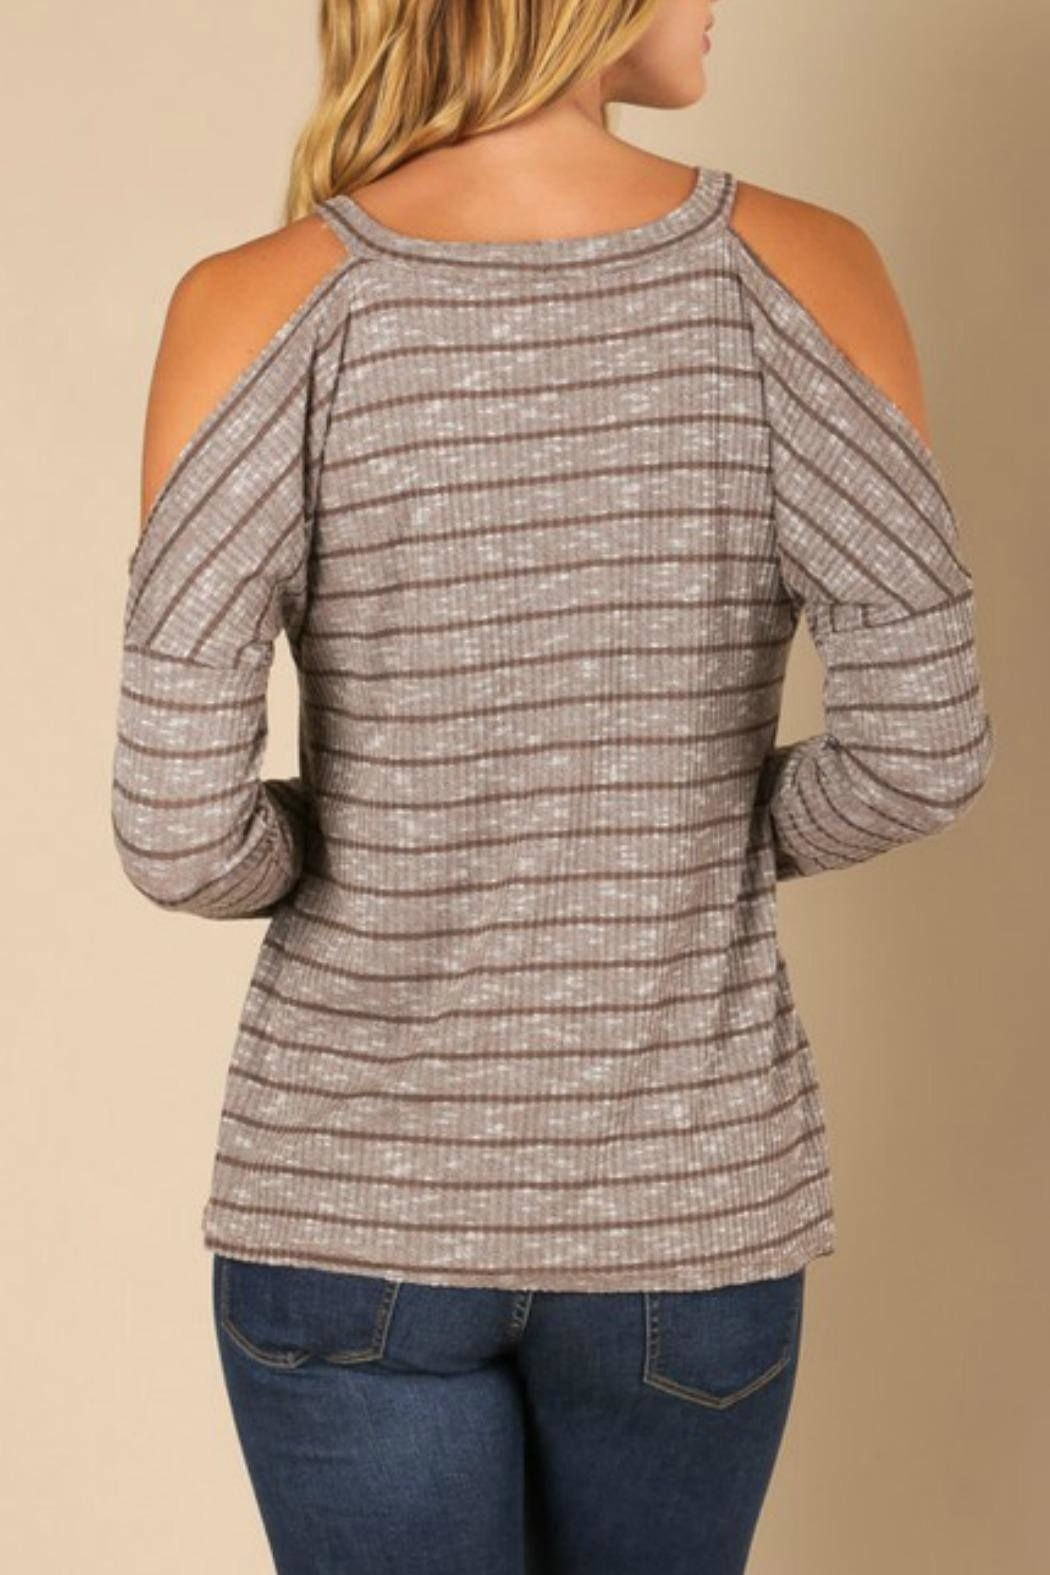 0b0f62764bdaa4 jella c Striped Cold Shoulder Top from California by Apricot Lane ...